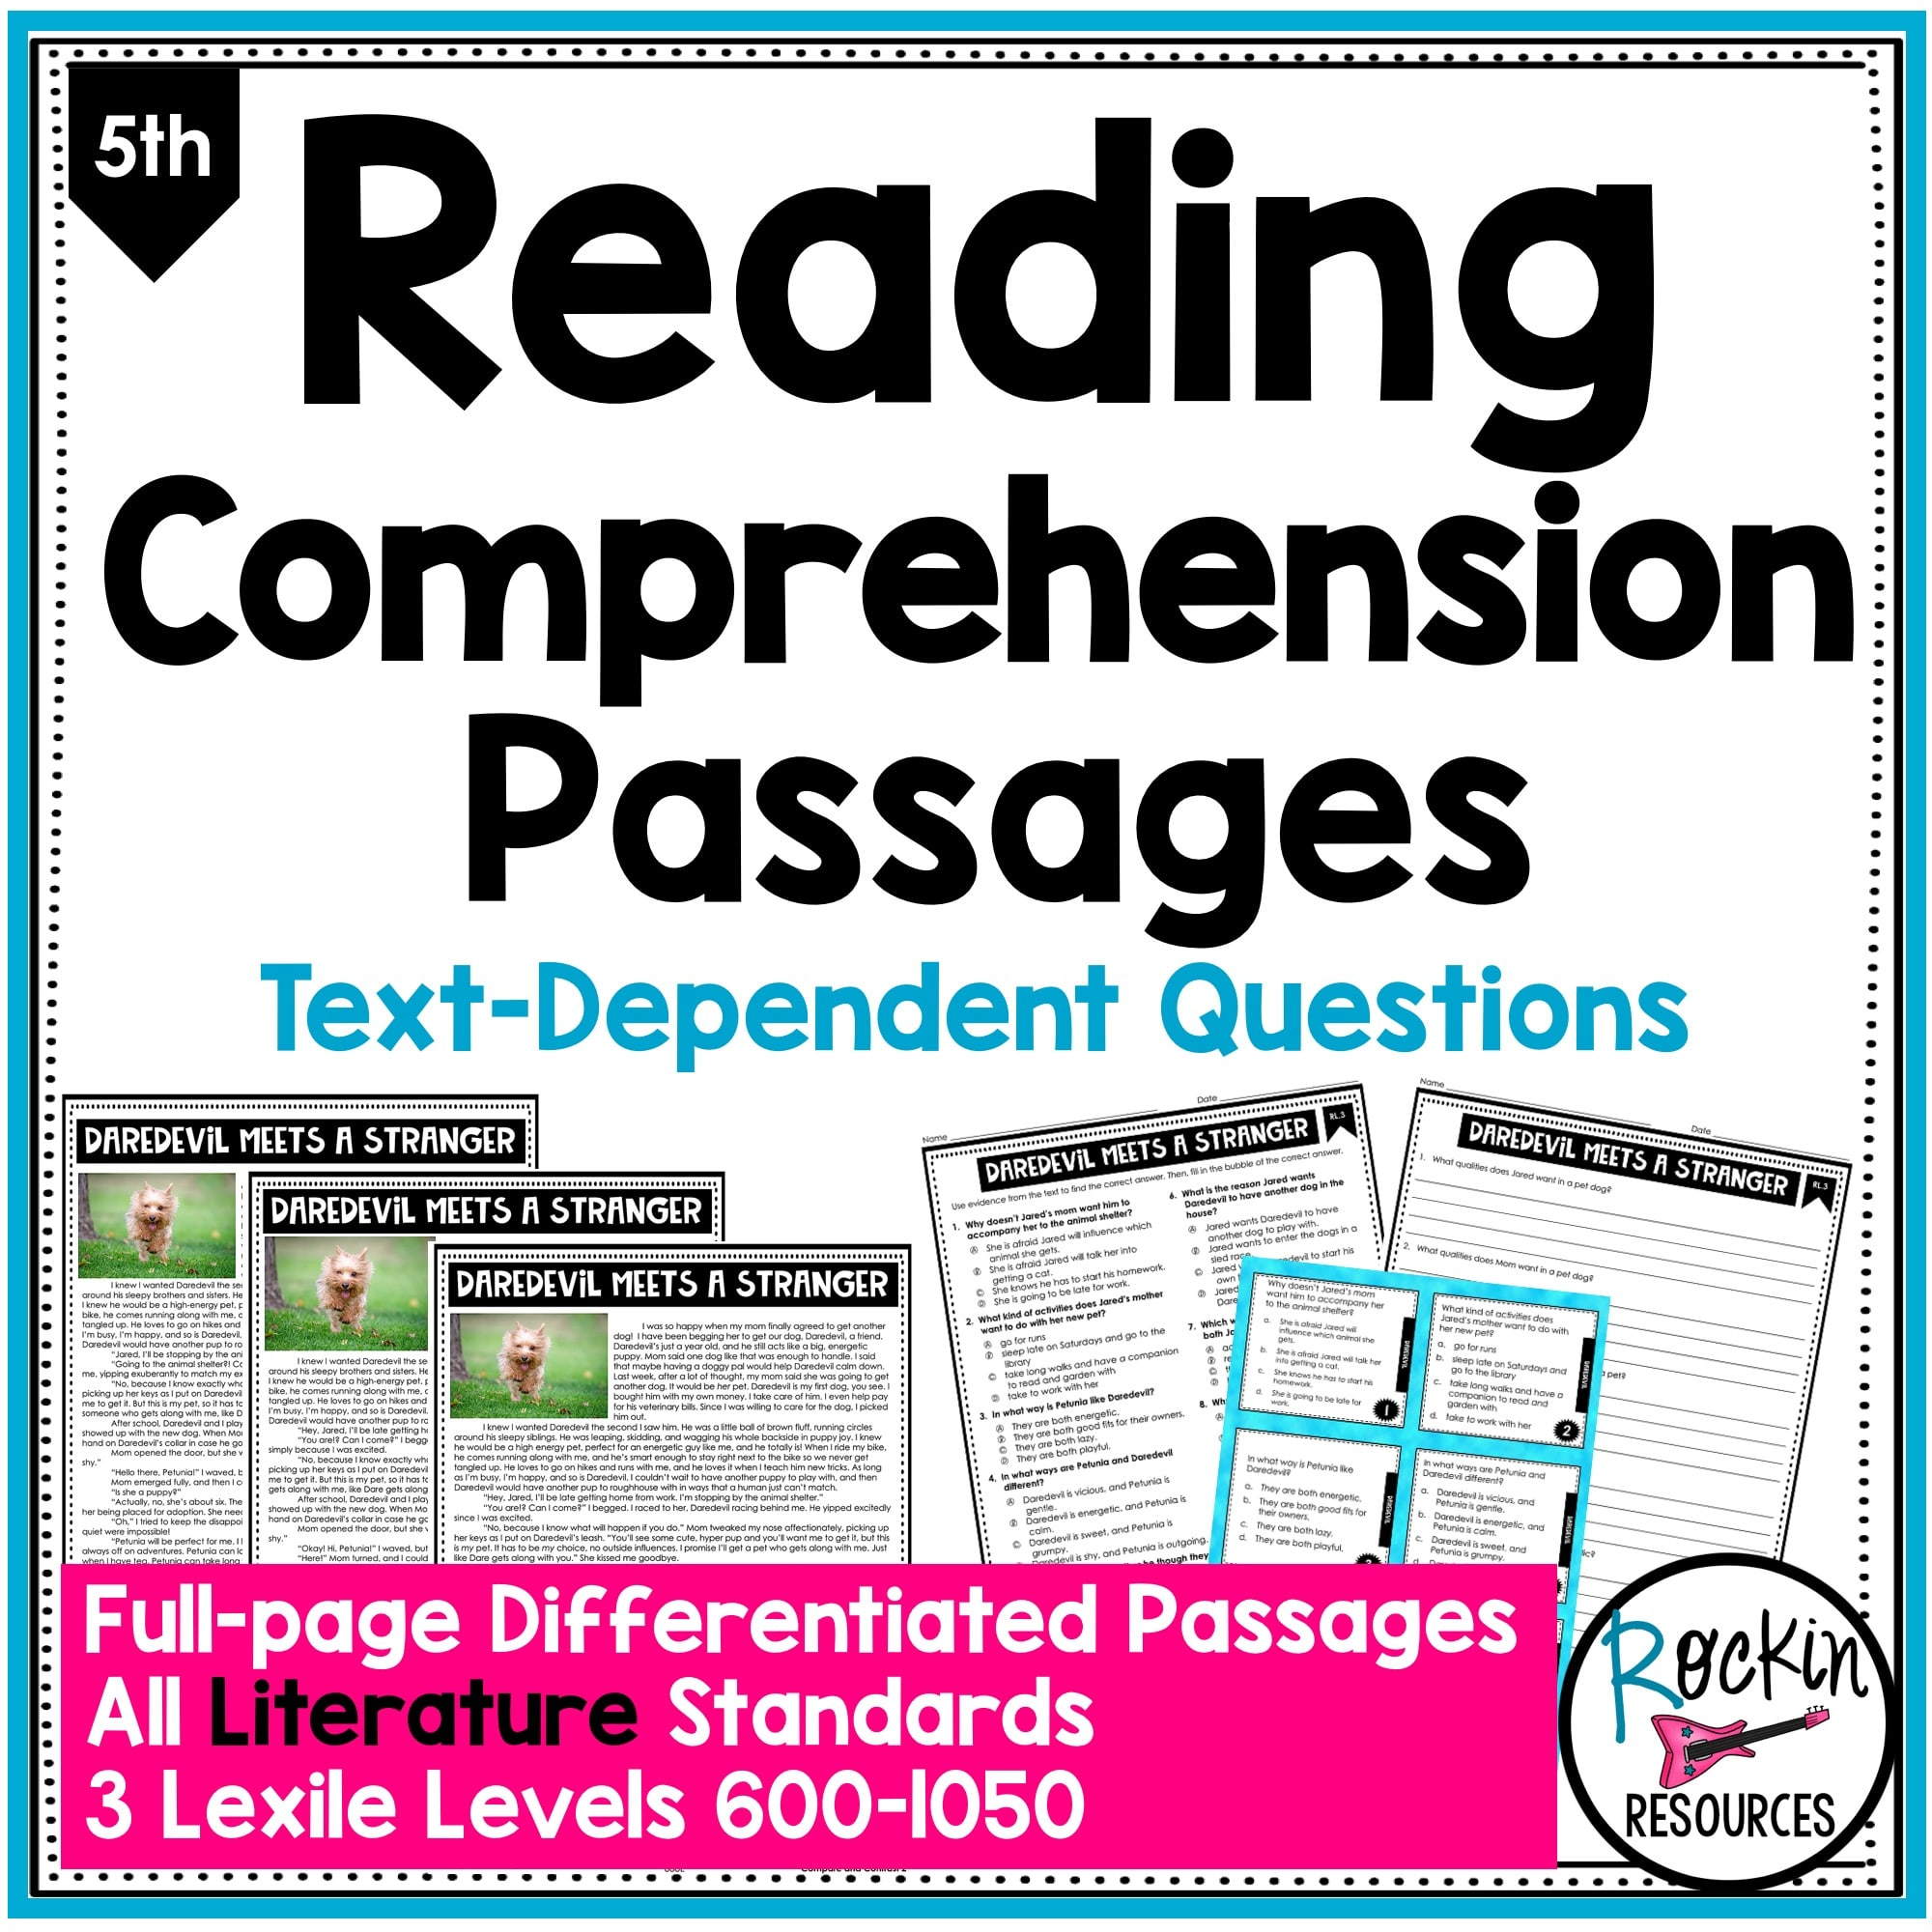 - 5th Grade Literature Reading Comprehension Passages Rockin Resources